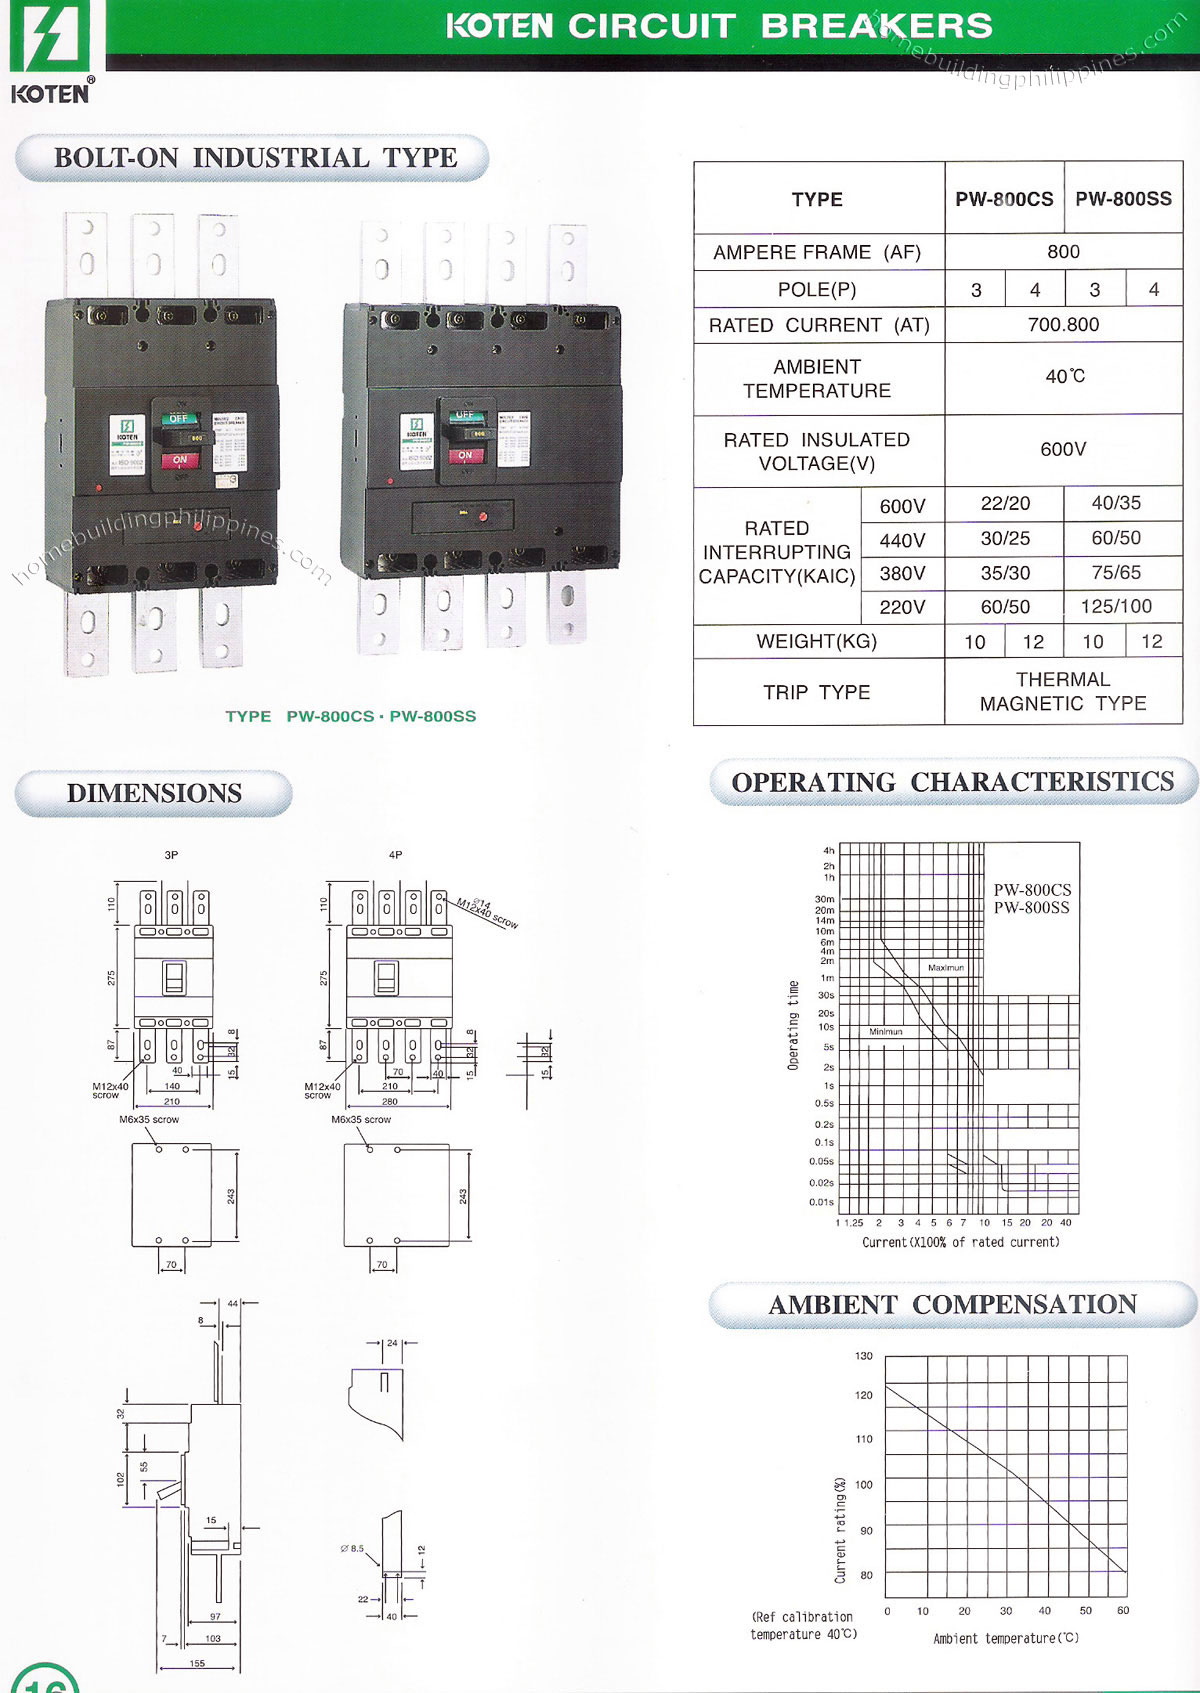 Koten Bolt On Electricity Circuit Breaker Industrial Type Philippines Ground Fault Interrupter